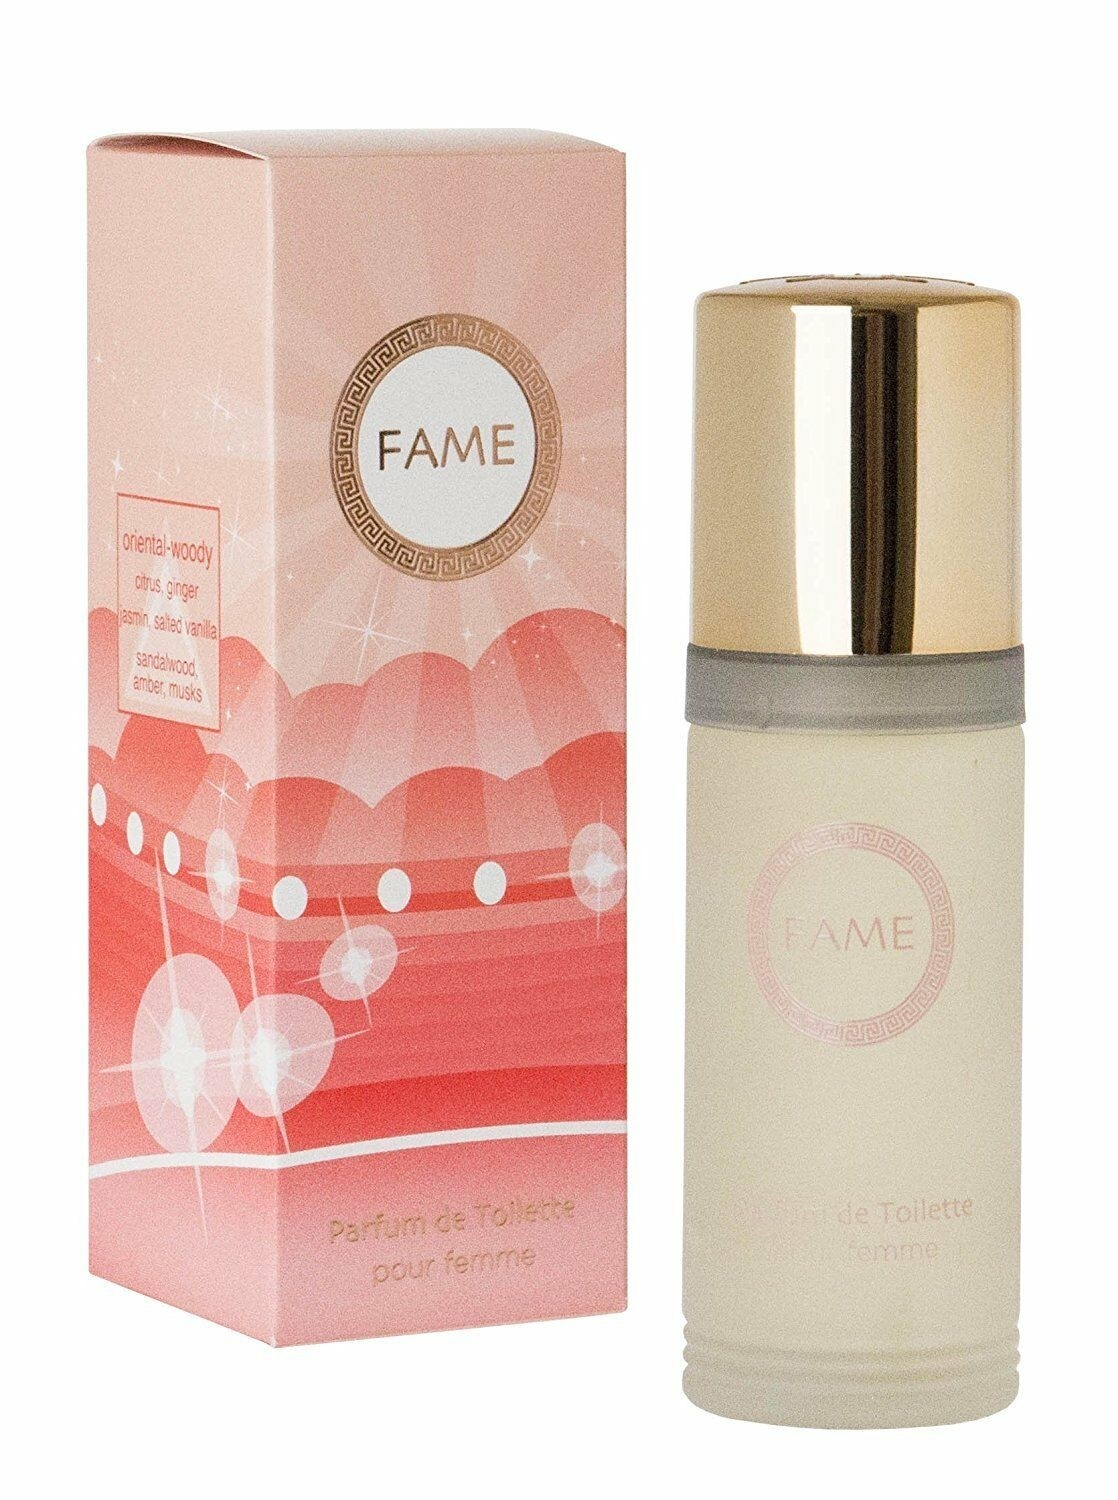 Milton Lloyd Ladies Perfume - Fame - 55ml PDT - Parfum De Toilette